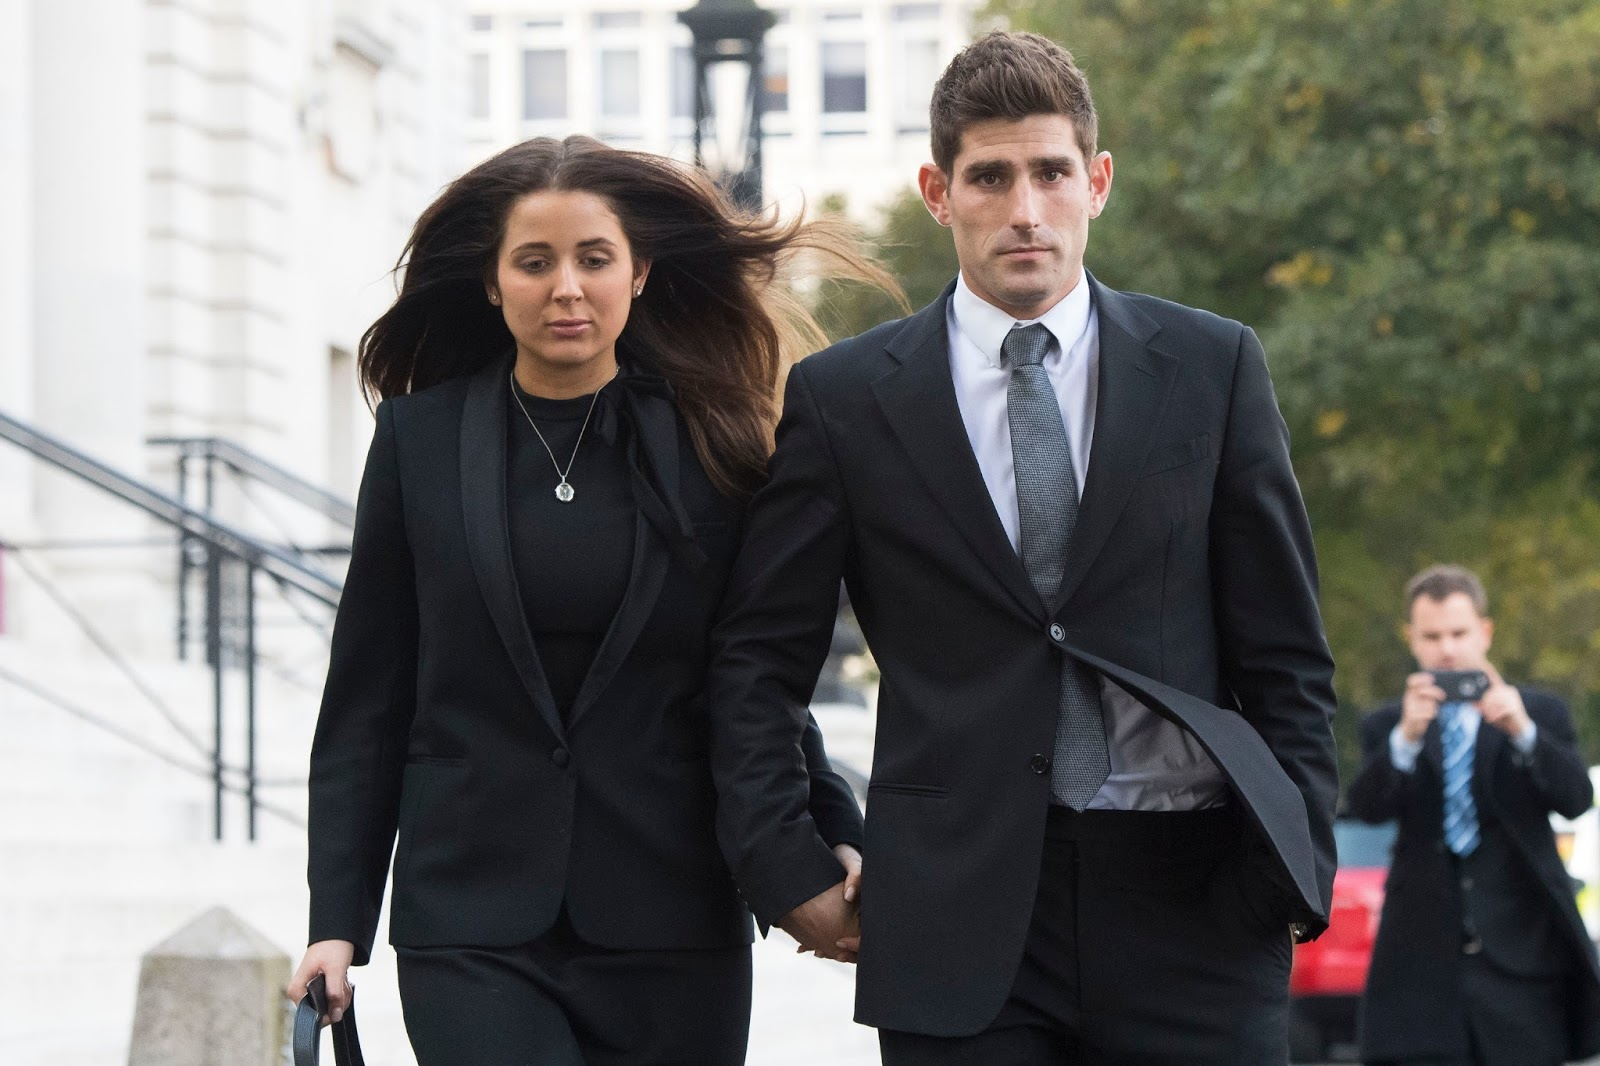 CHED EVANS 5